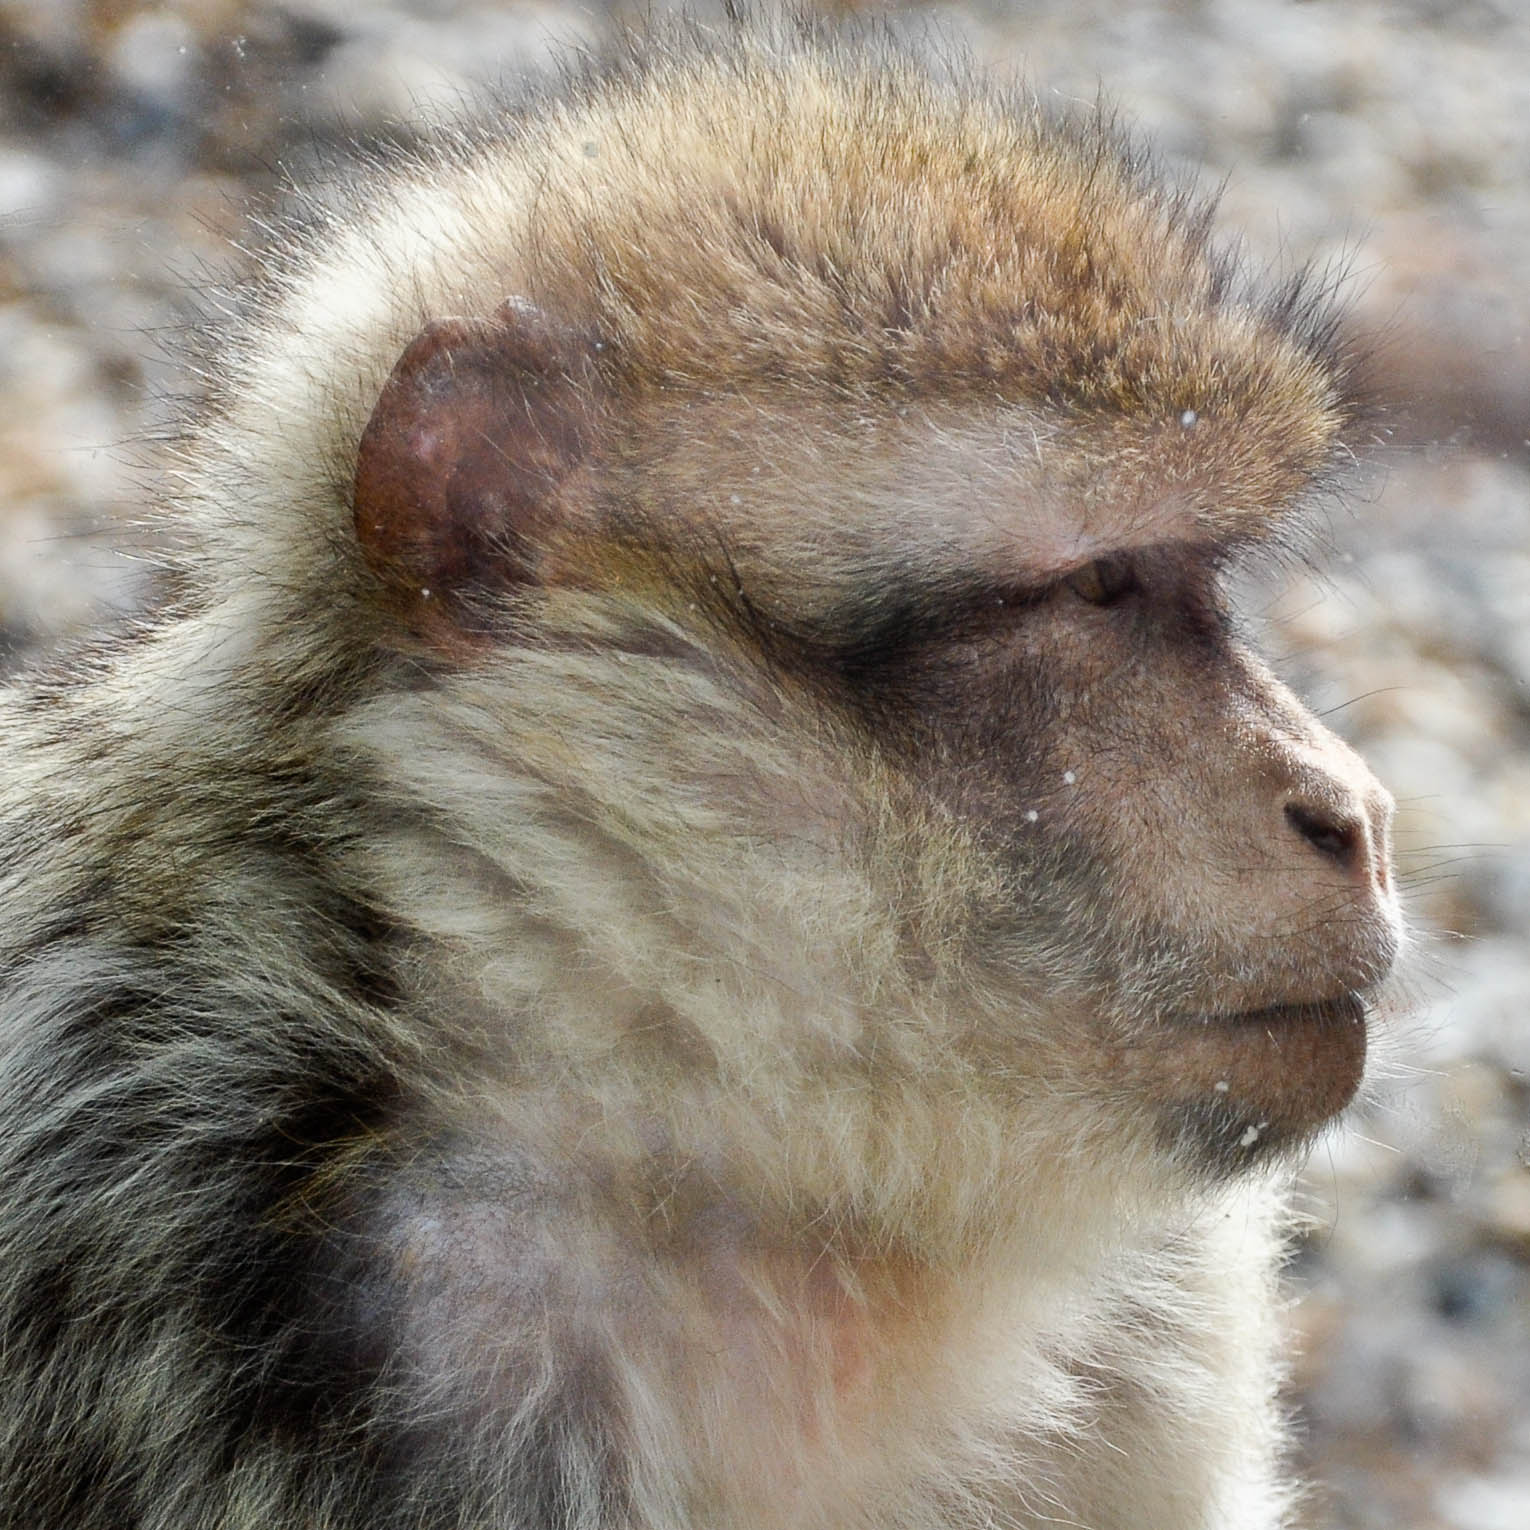 Close-up of a monkey,  Monkey Haven, Isle of Wight, UK